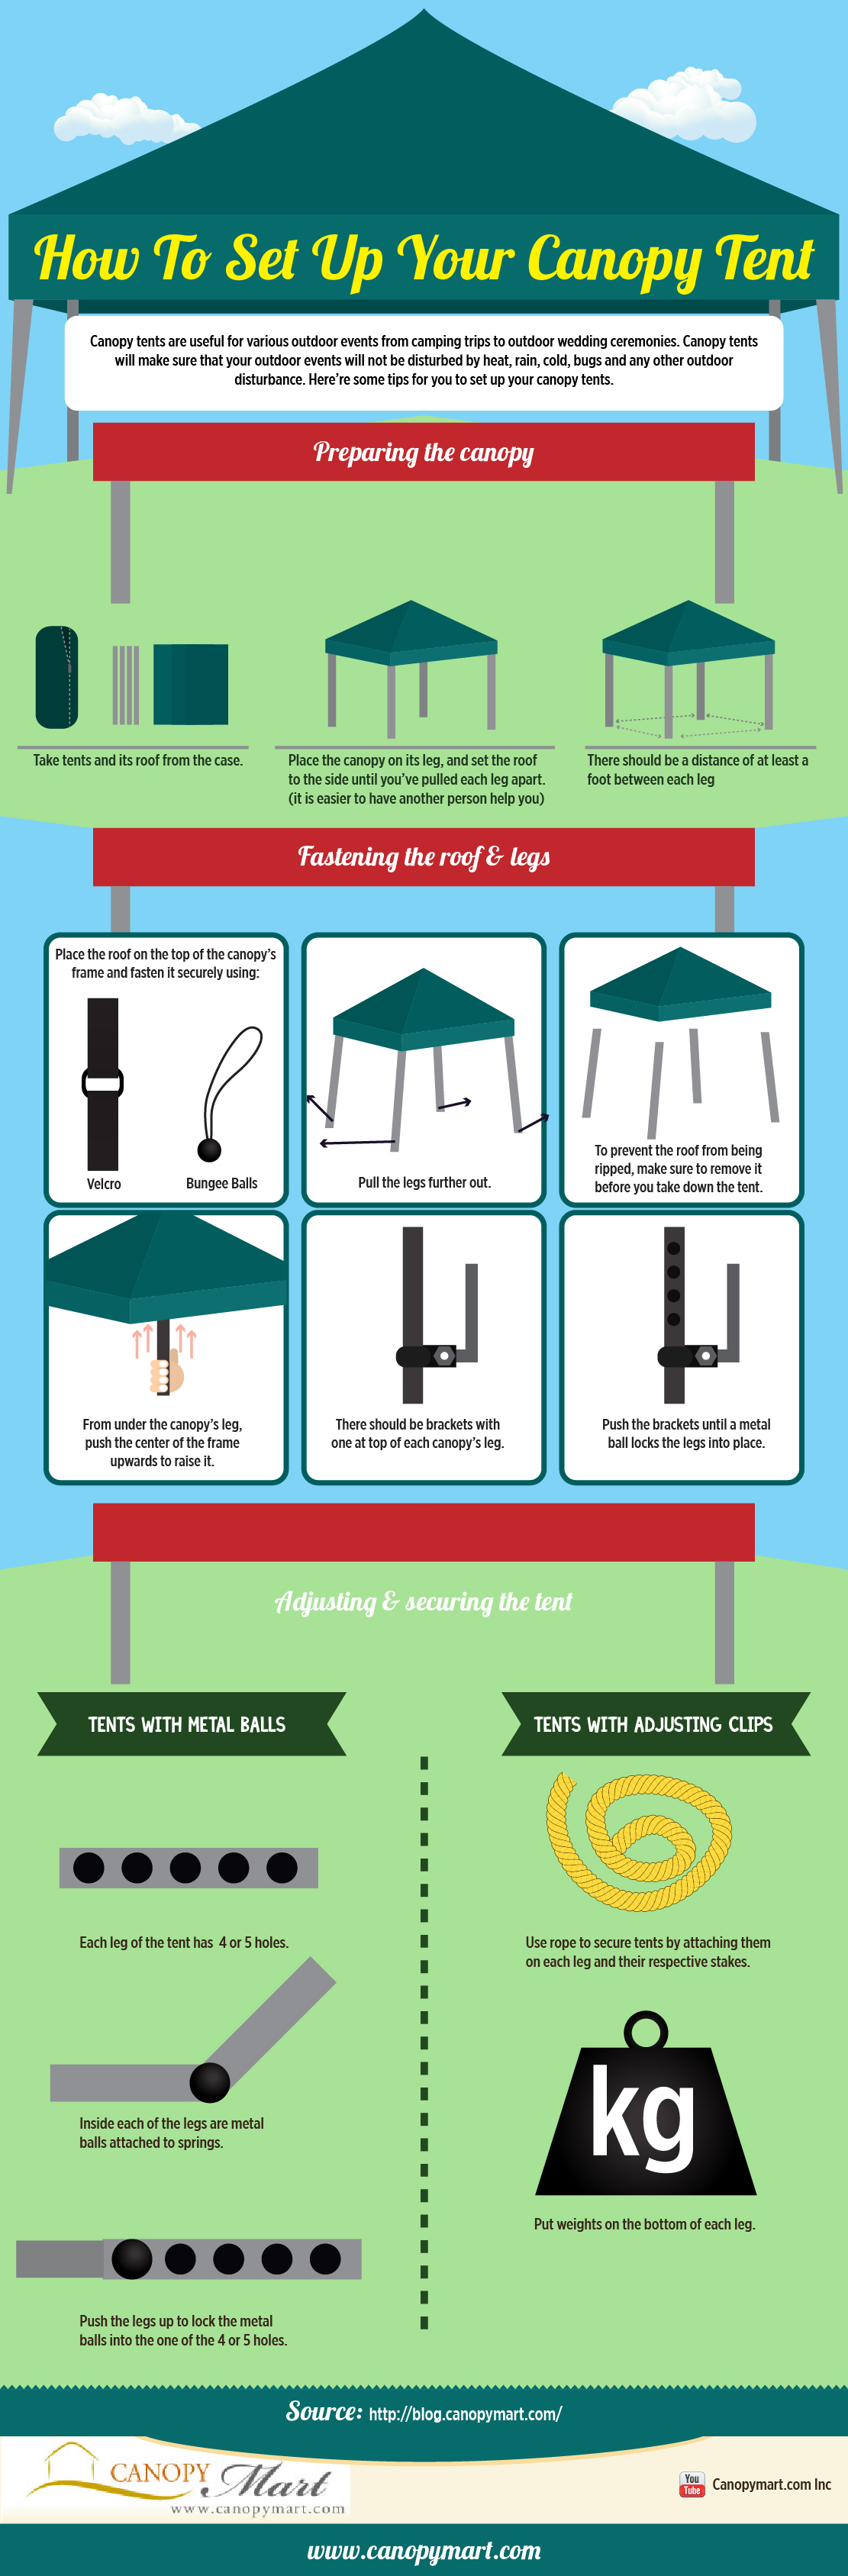 How to Set Up Your Canopy Tent